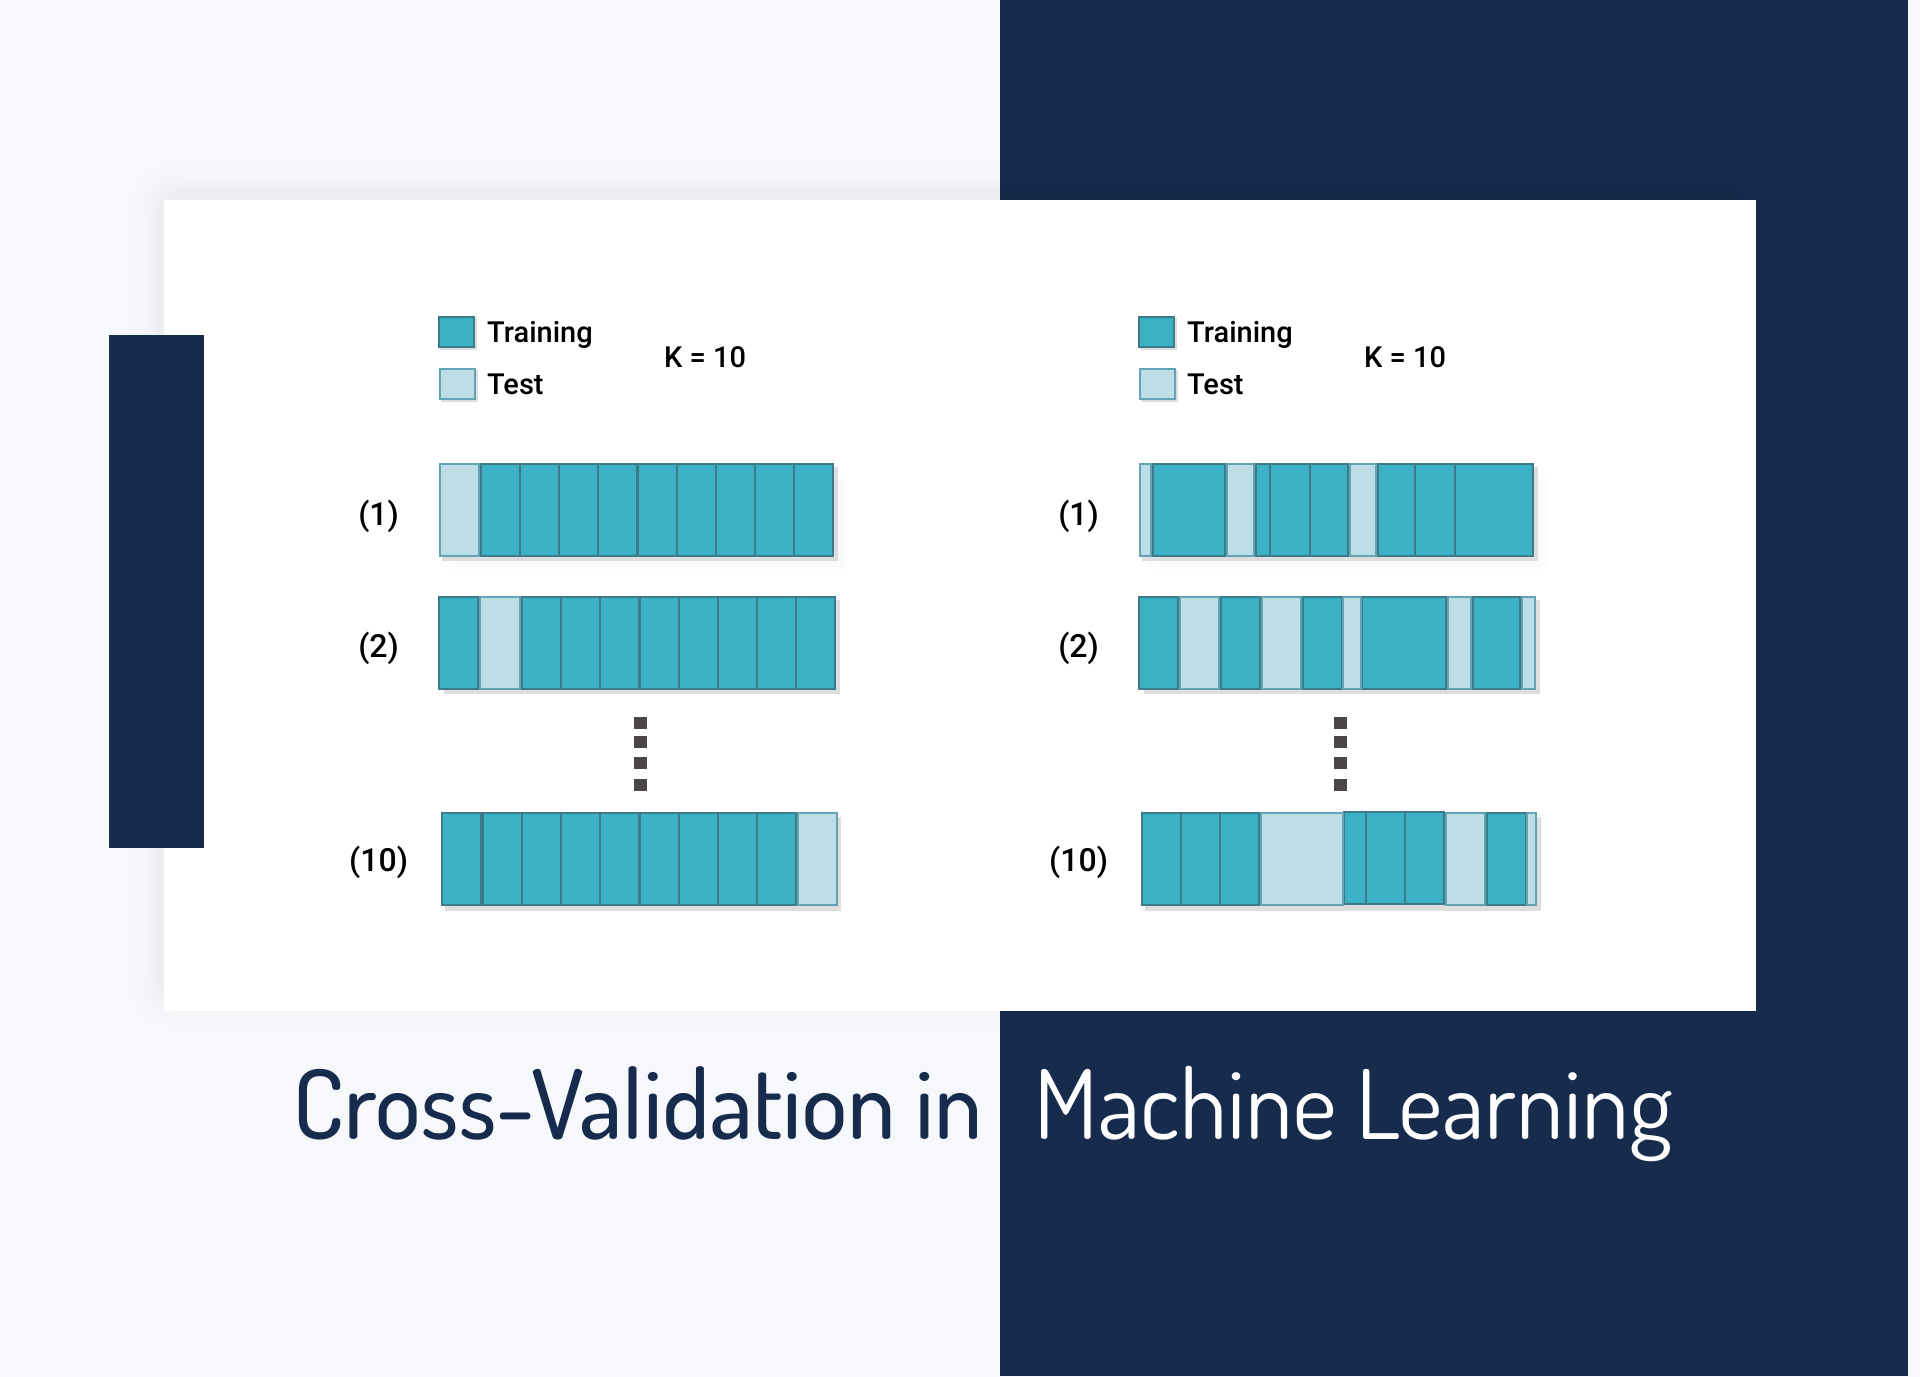 Cross-Validation in Machine Learning: How to Do It Right